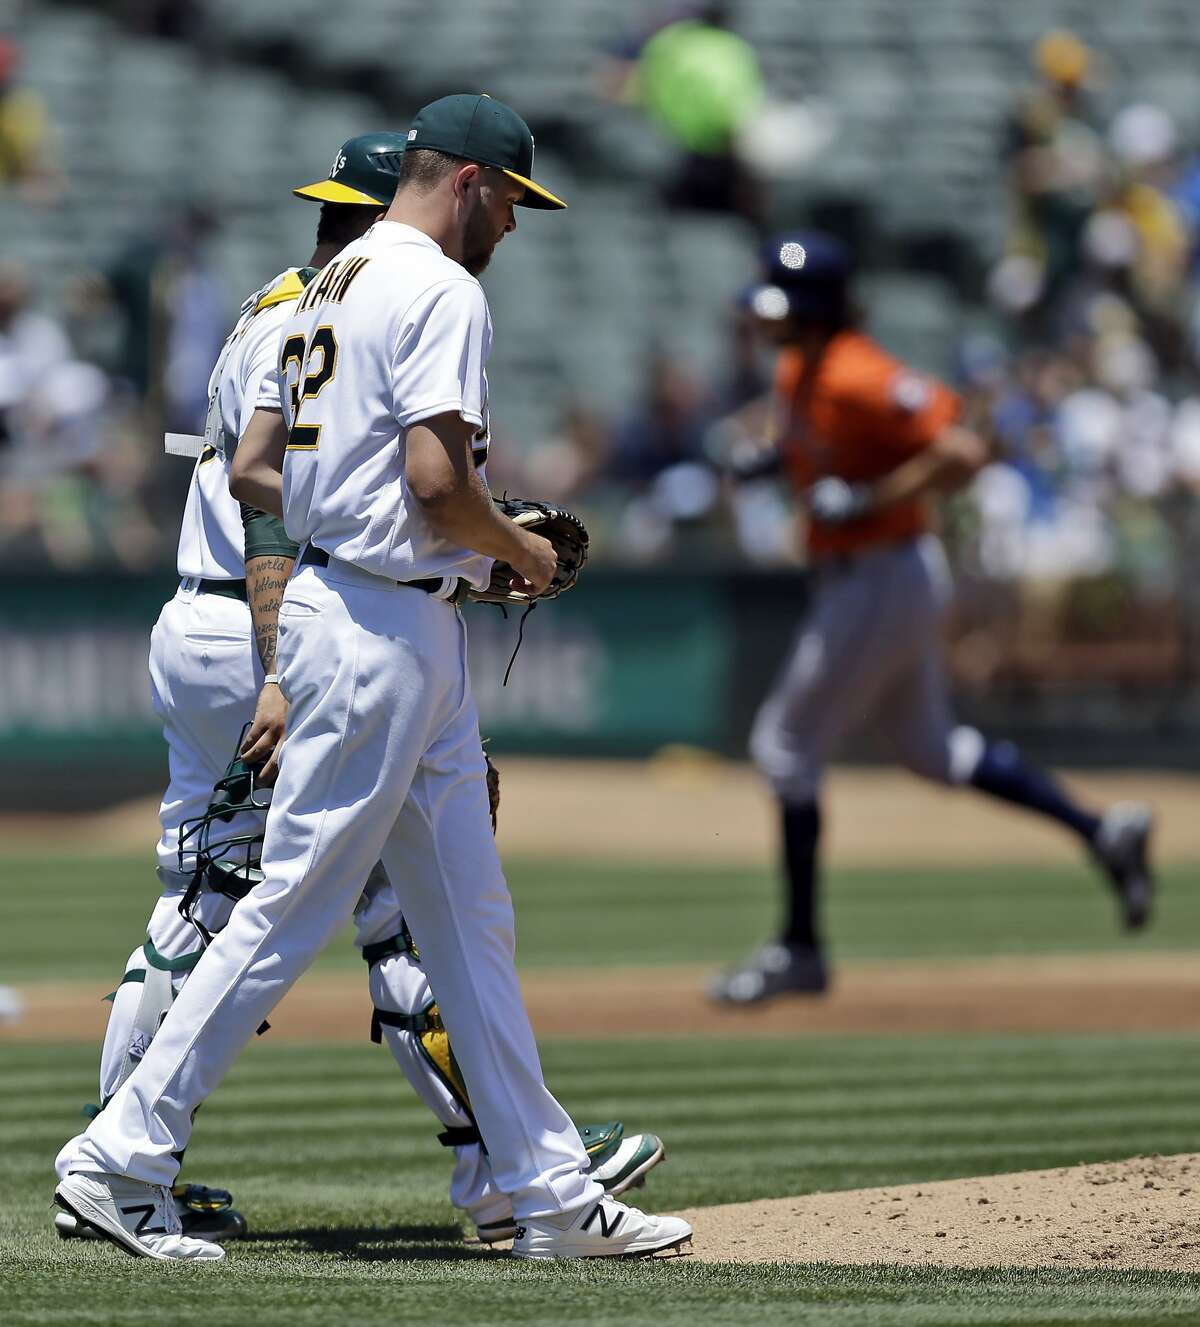 Oakland Athletics pitcher Jesse Hahn, left, walks back to the mound with catcher Bruce Maxwell as Houston Astros' Jake Marisnick, right, runs the bases after hitting a three-run home run off Hahn in the first inning of a baseball game Thursday, June 22, 2017, in Oakland, Calif. (AP Photo/Ben Margot)